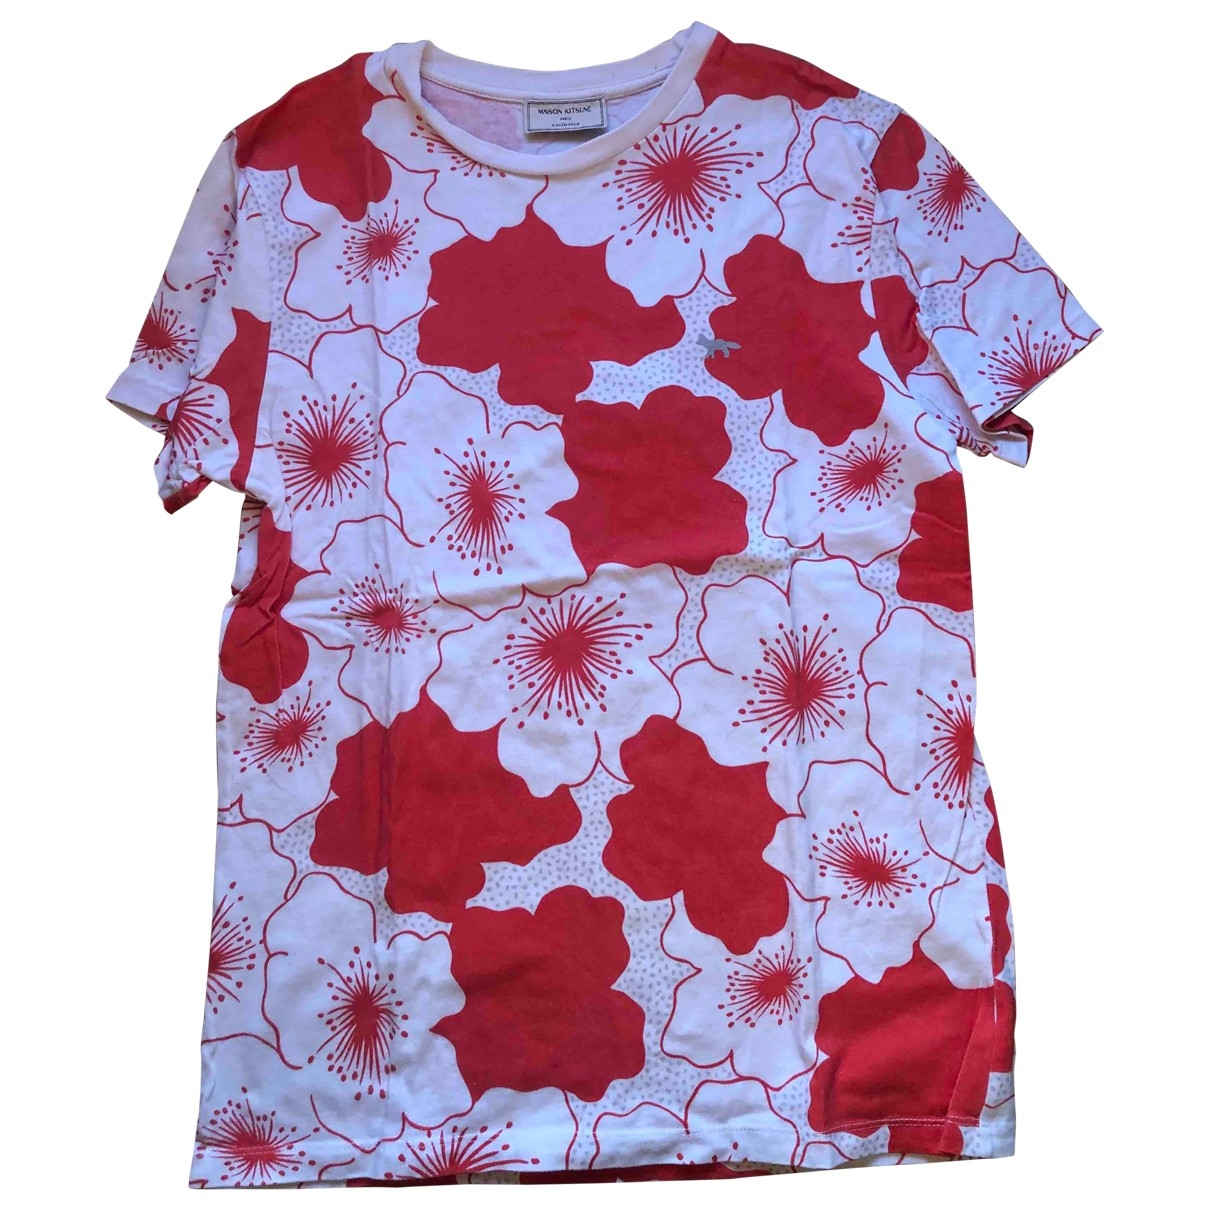 Maison Kitsune \N Red Cotton  top for Women 36 FR